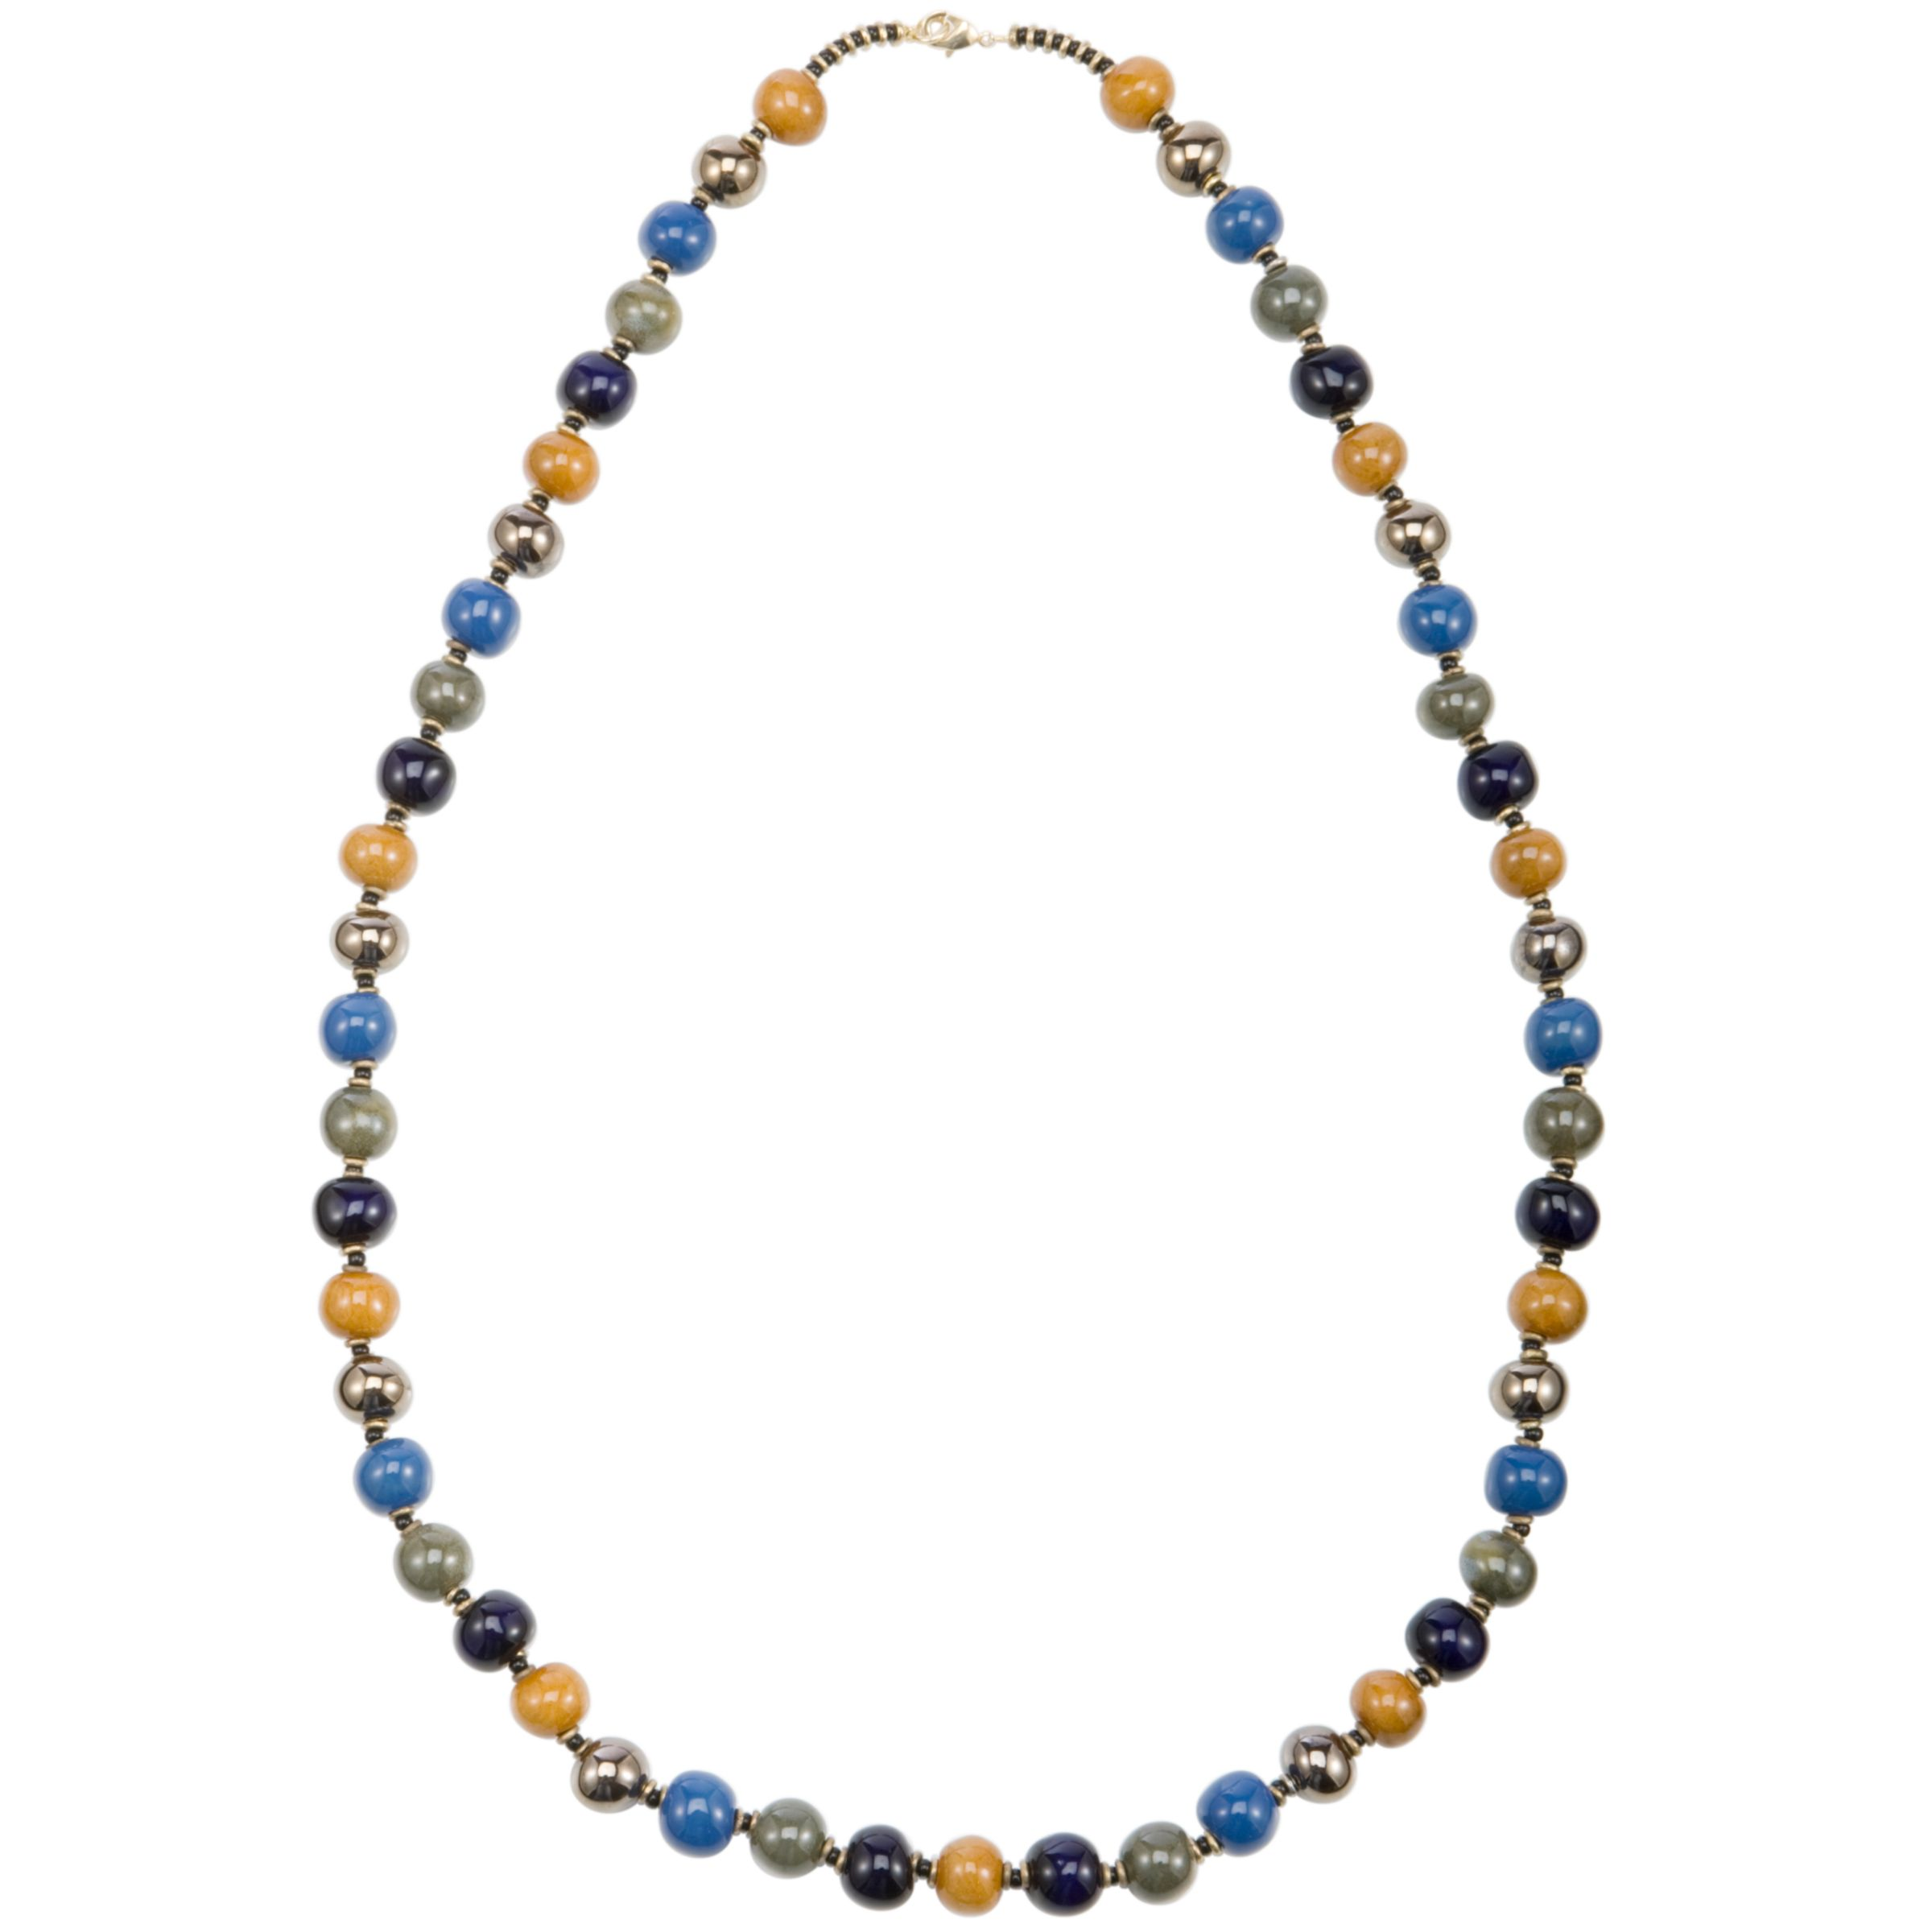 Kazuri Balloon Ceramic Bead Firefly Necklace, Lapis